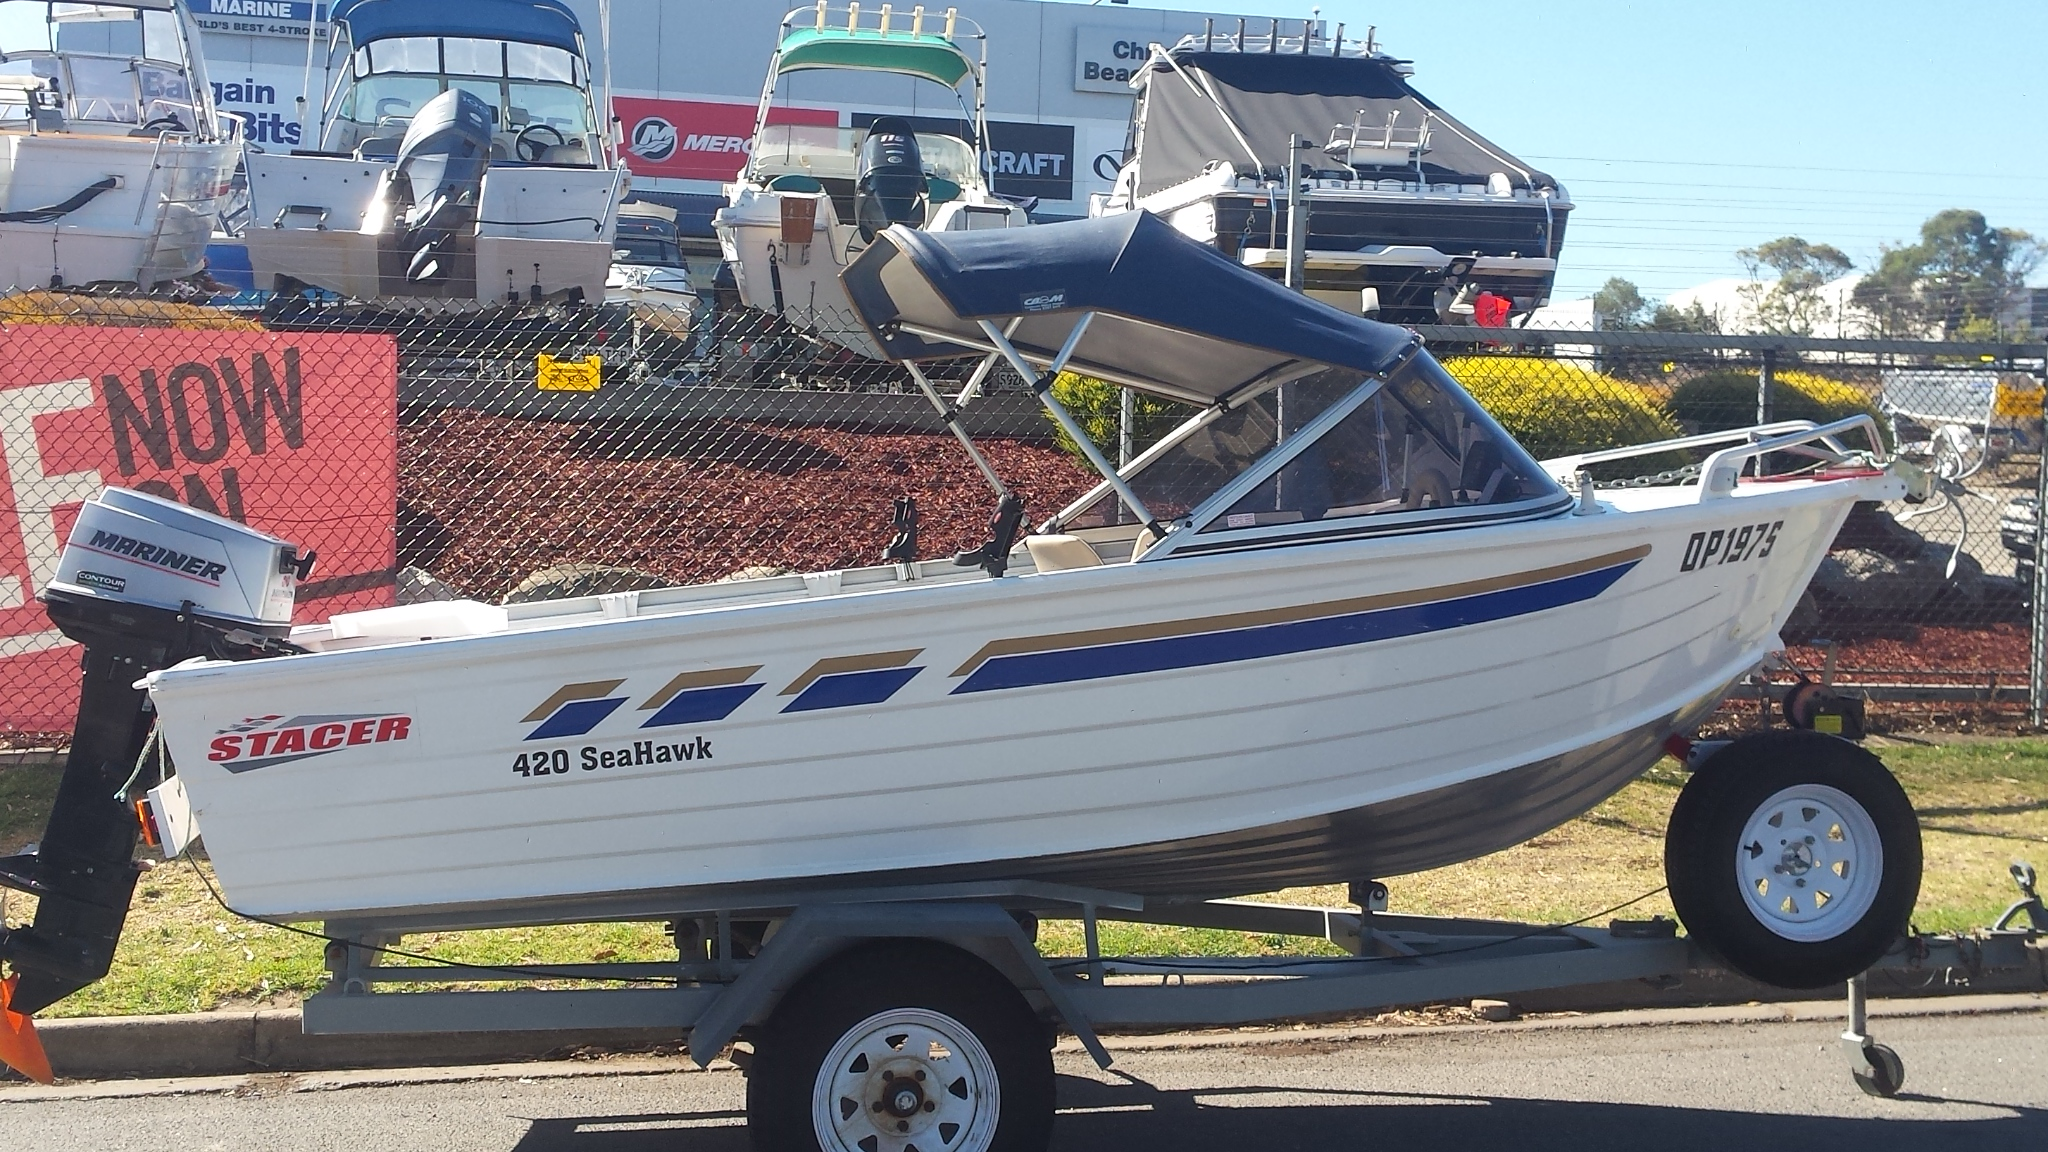 2003 Stacer  420 Seahawk